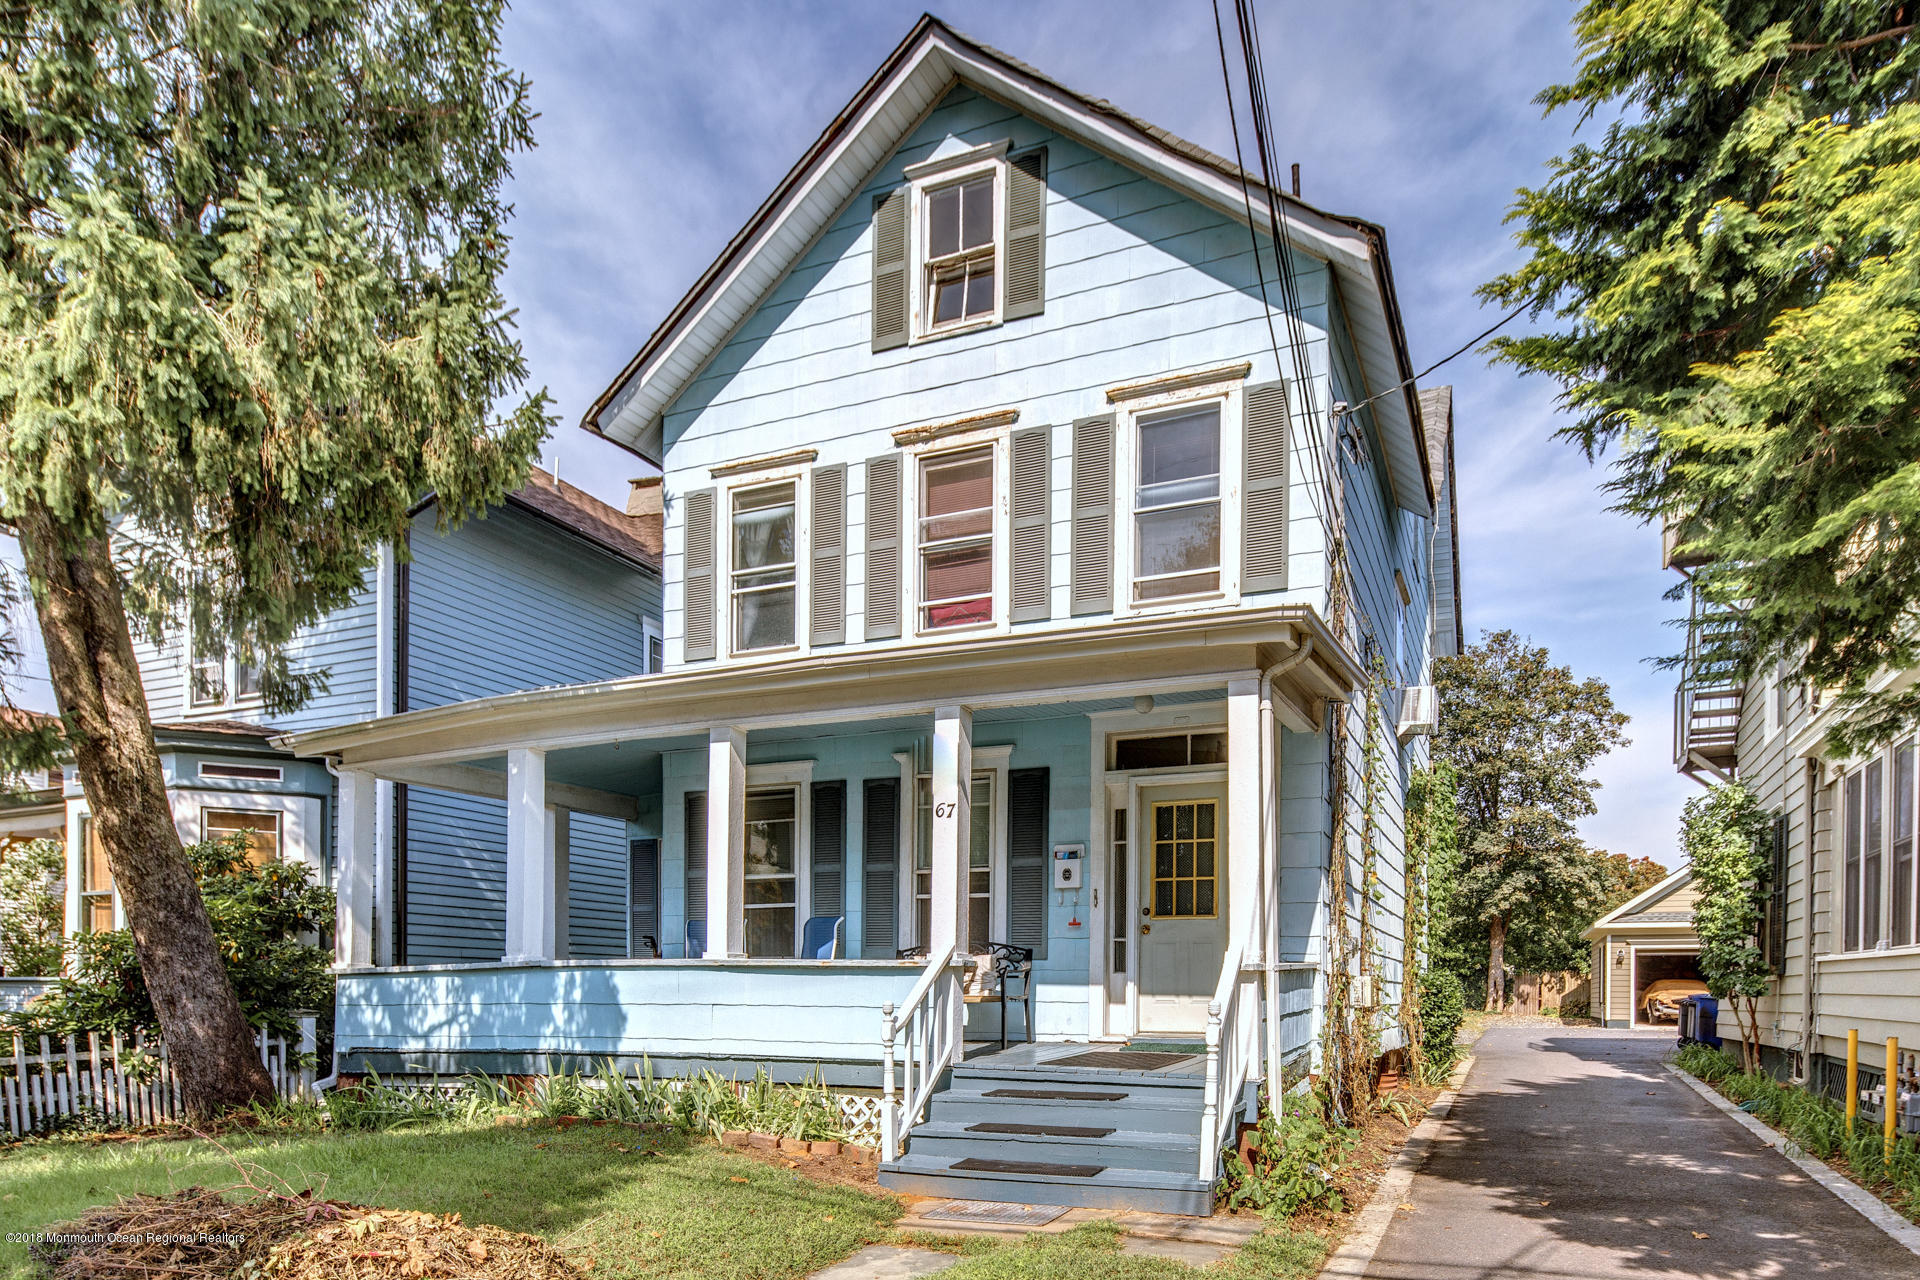 Photo of 67 Wallace Street, Red Bank, NJ 07701